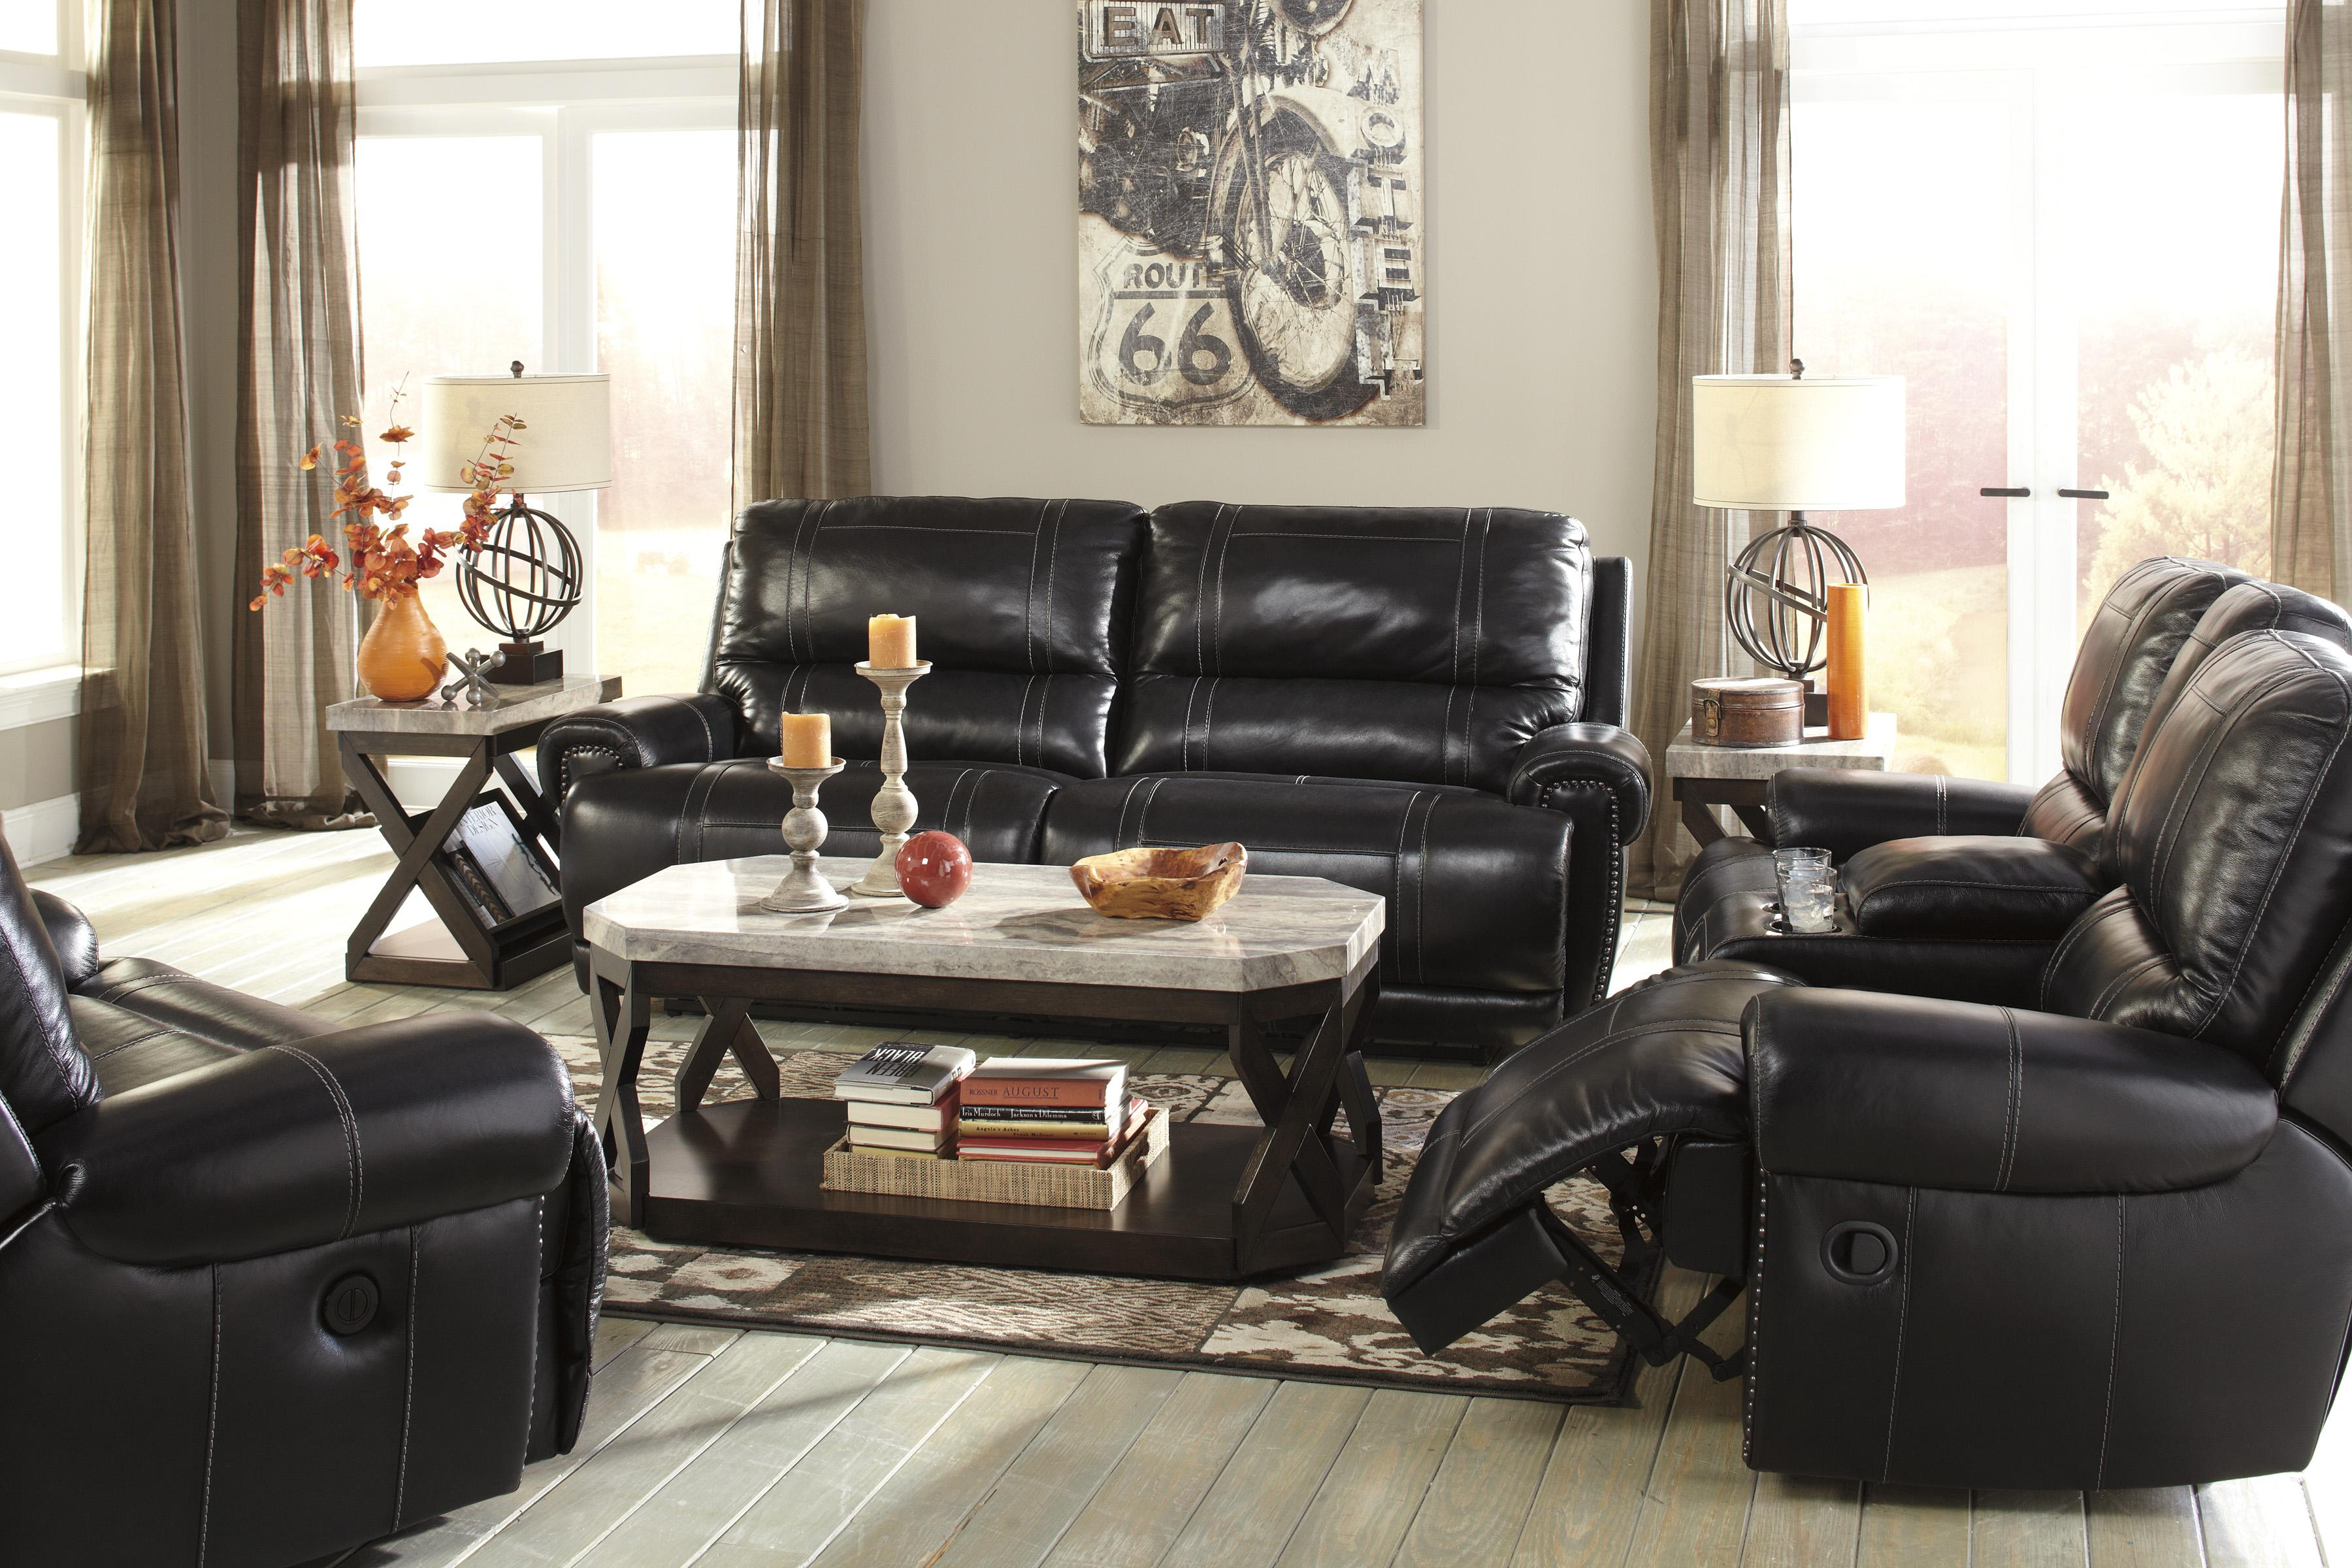 Signature Design by Ashley Paron - Antique Reclining Living Room Group - Item Number: U75901 Living Room Group 4